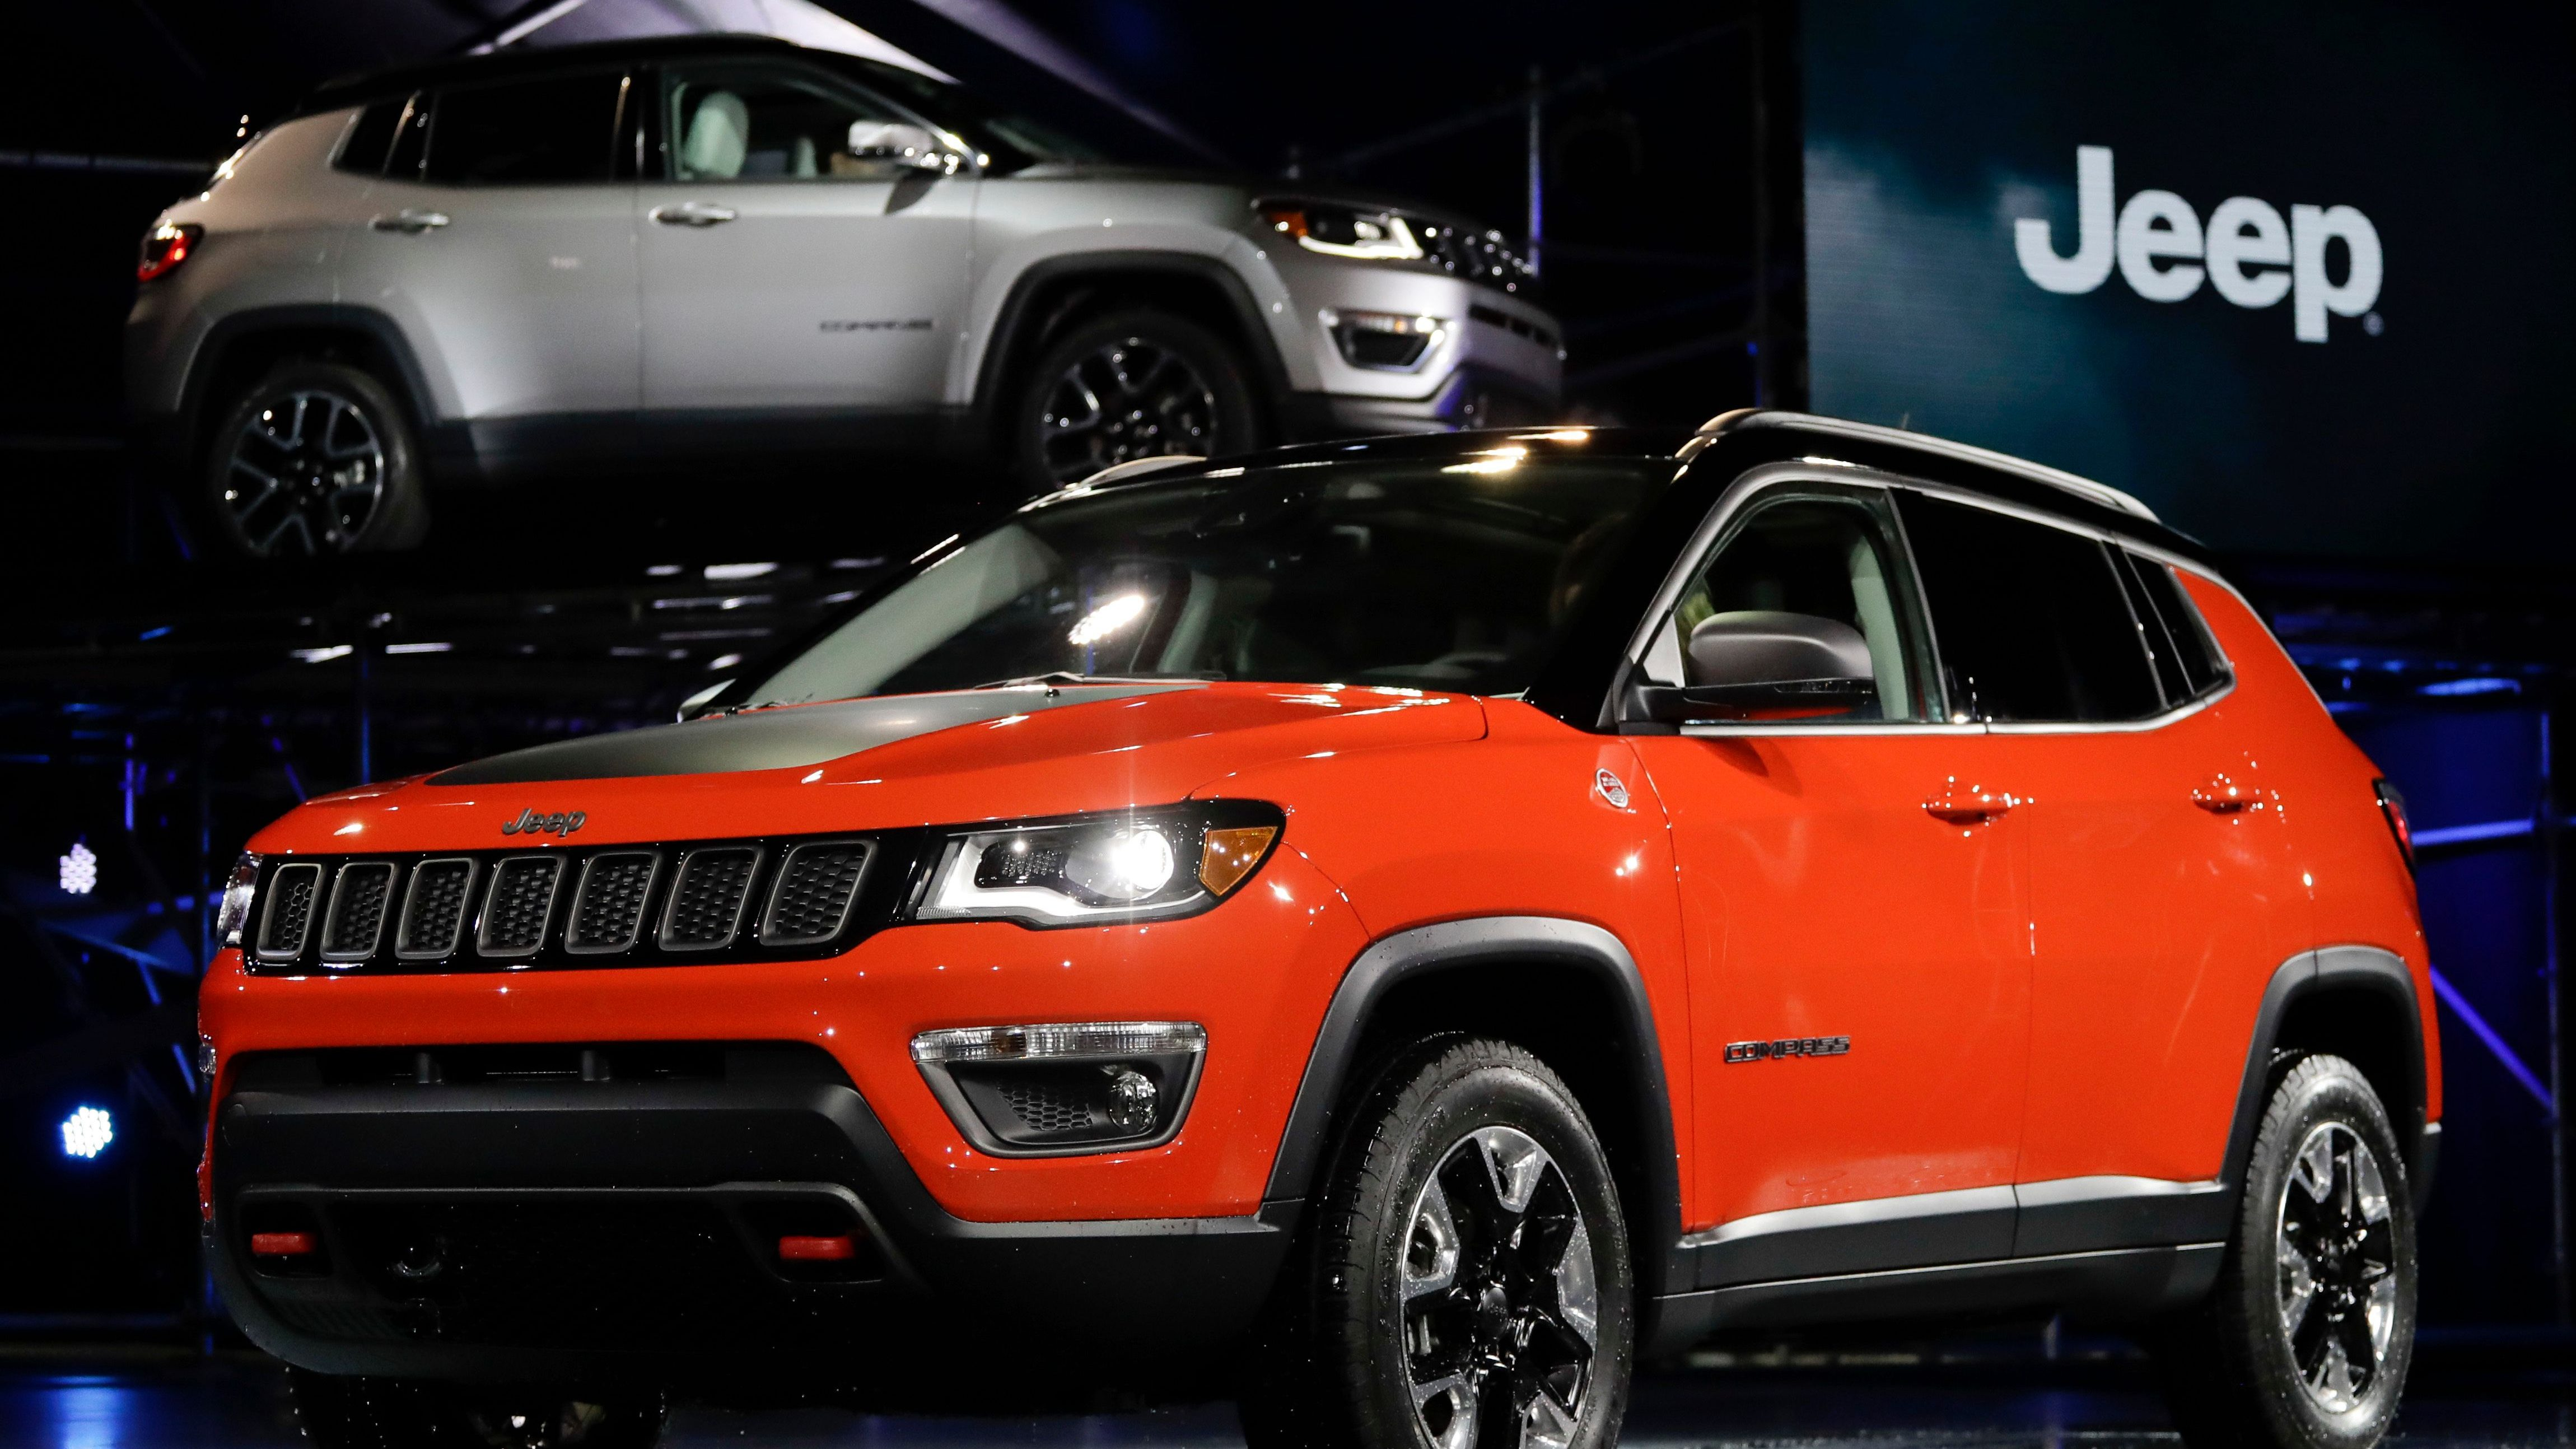 The 2017 Jeep Compass is displayed at the Los Angeles Auto Show in Los Angeles, Thursday, Nov. 17, 2016. (AP Photo/Chris Carlson)